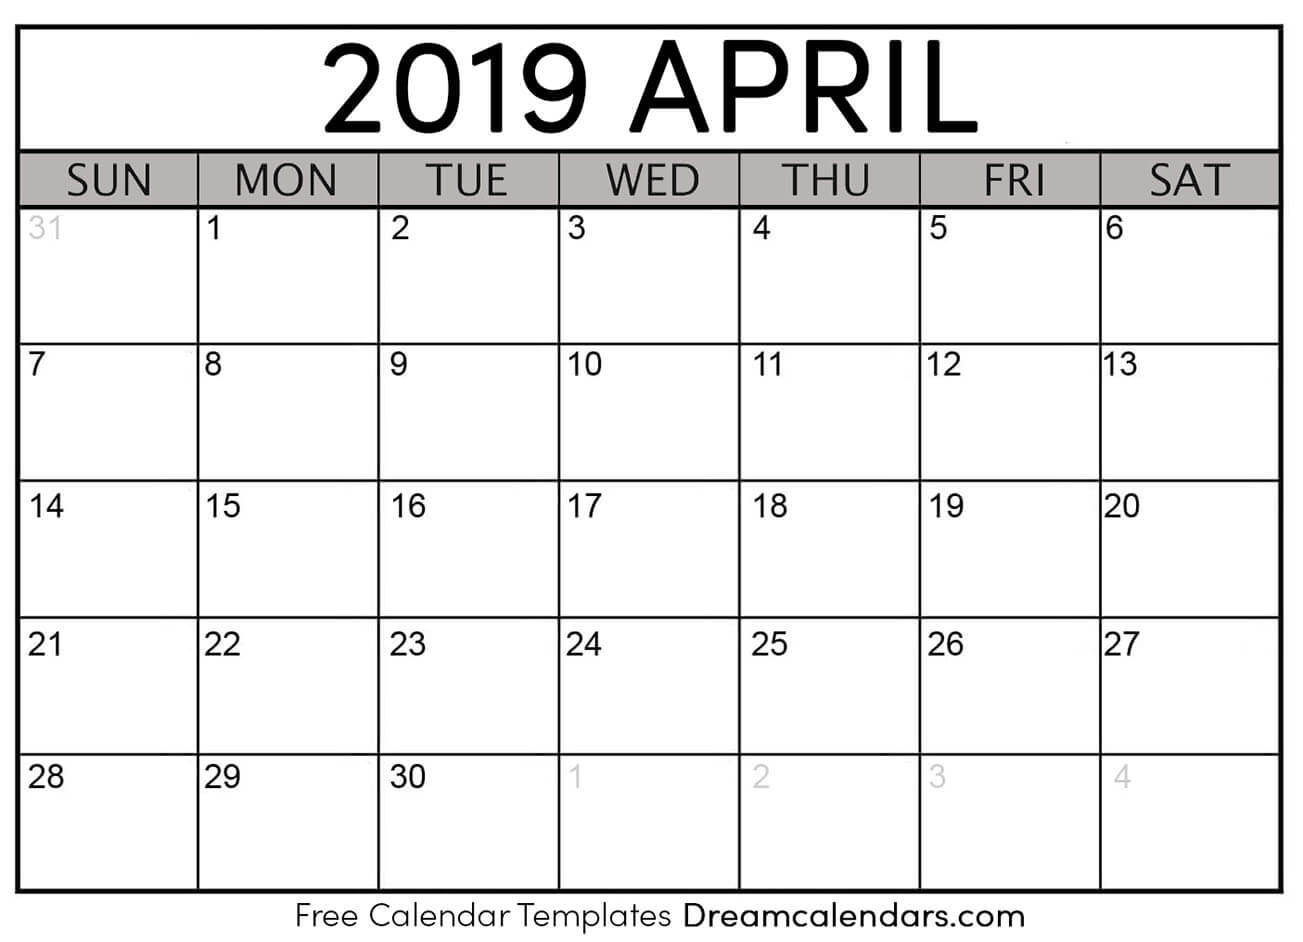 how to get a printed or printable calendar for april 2019